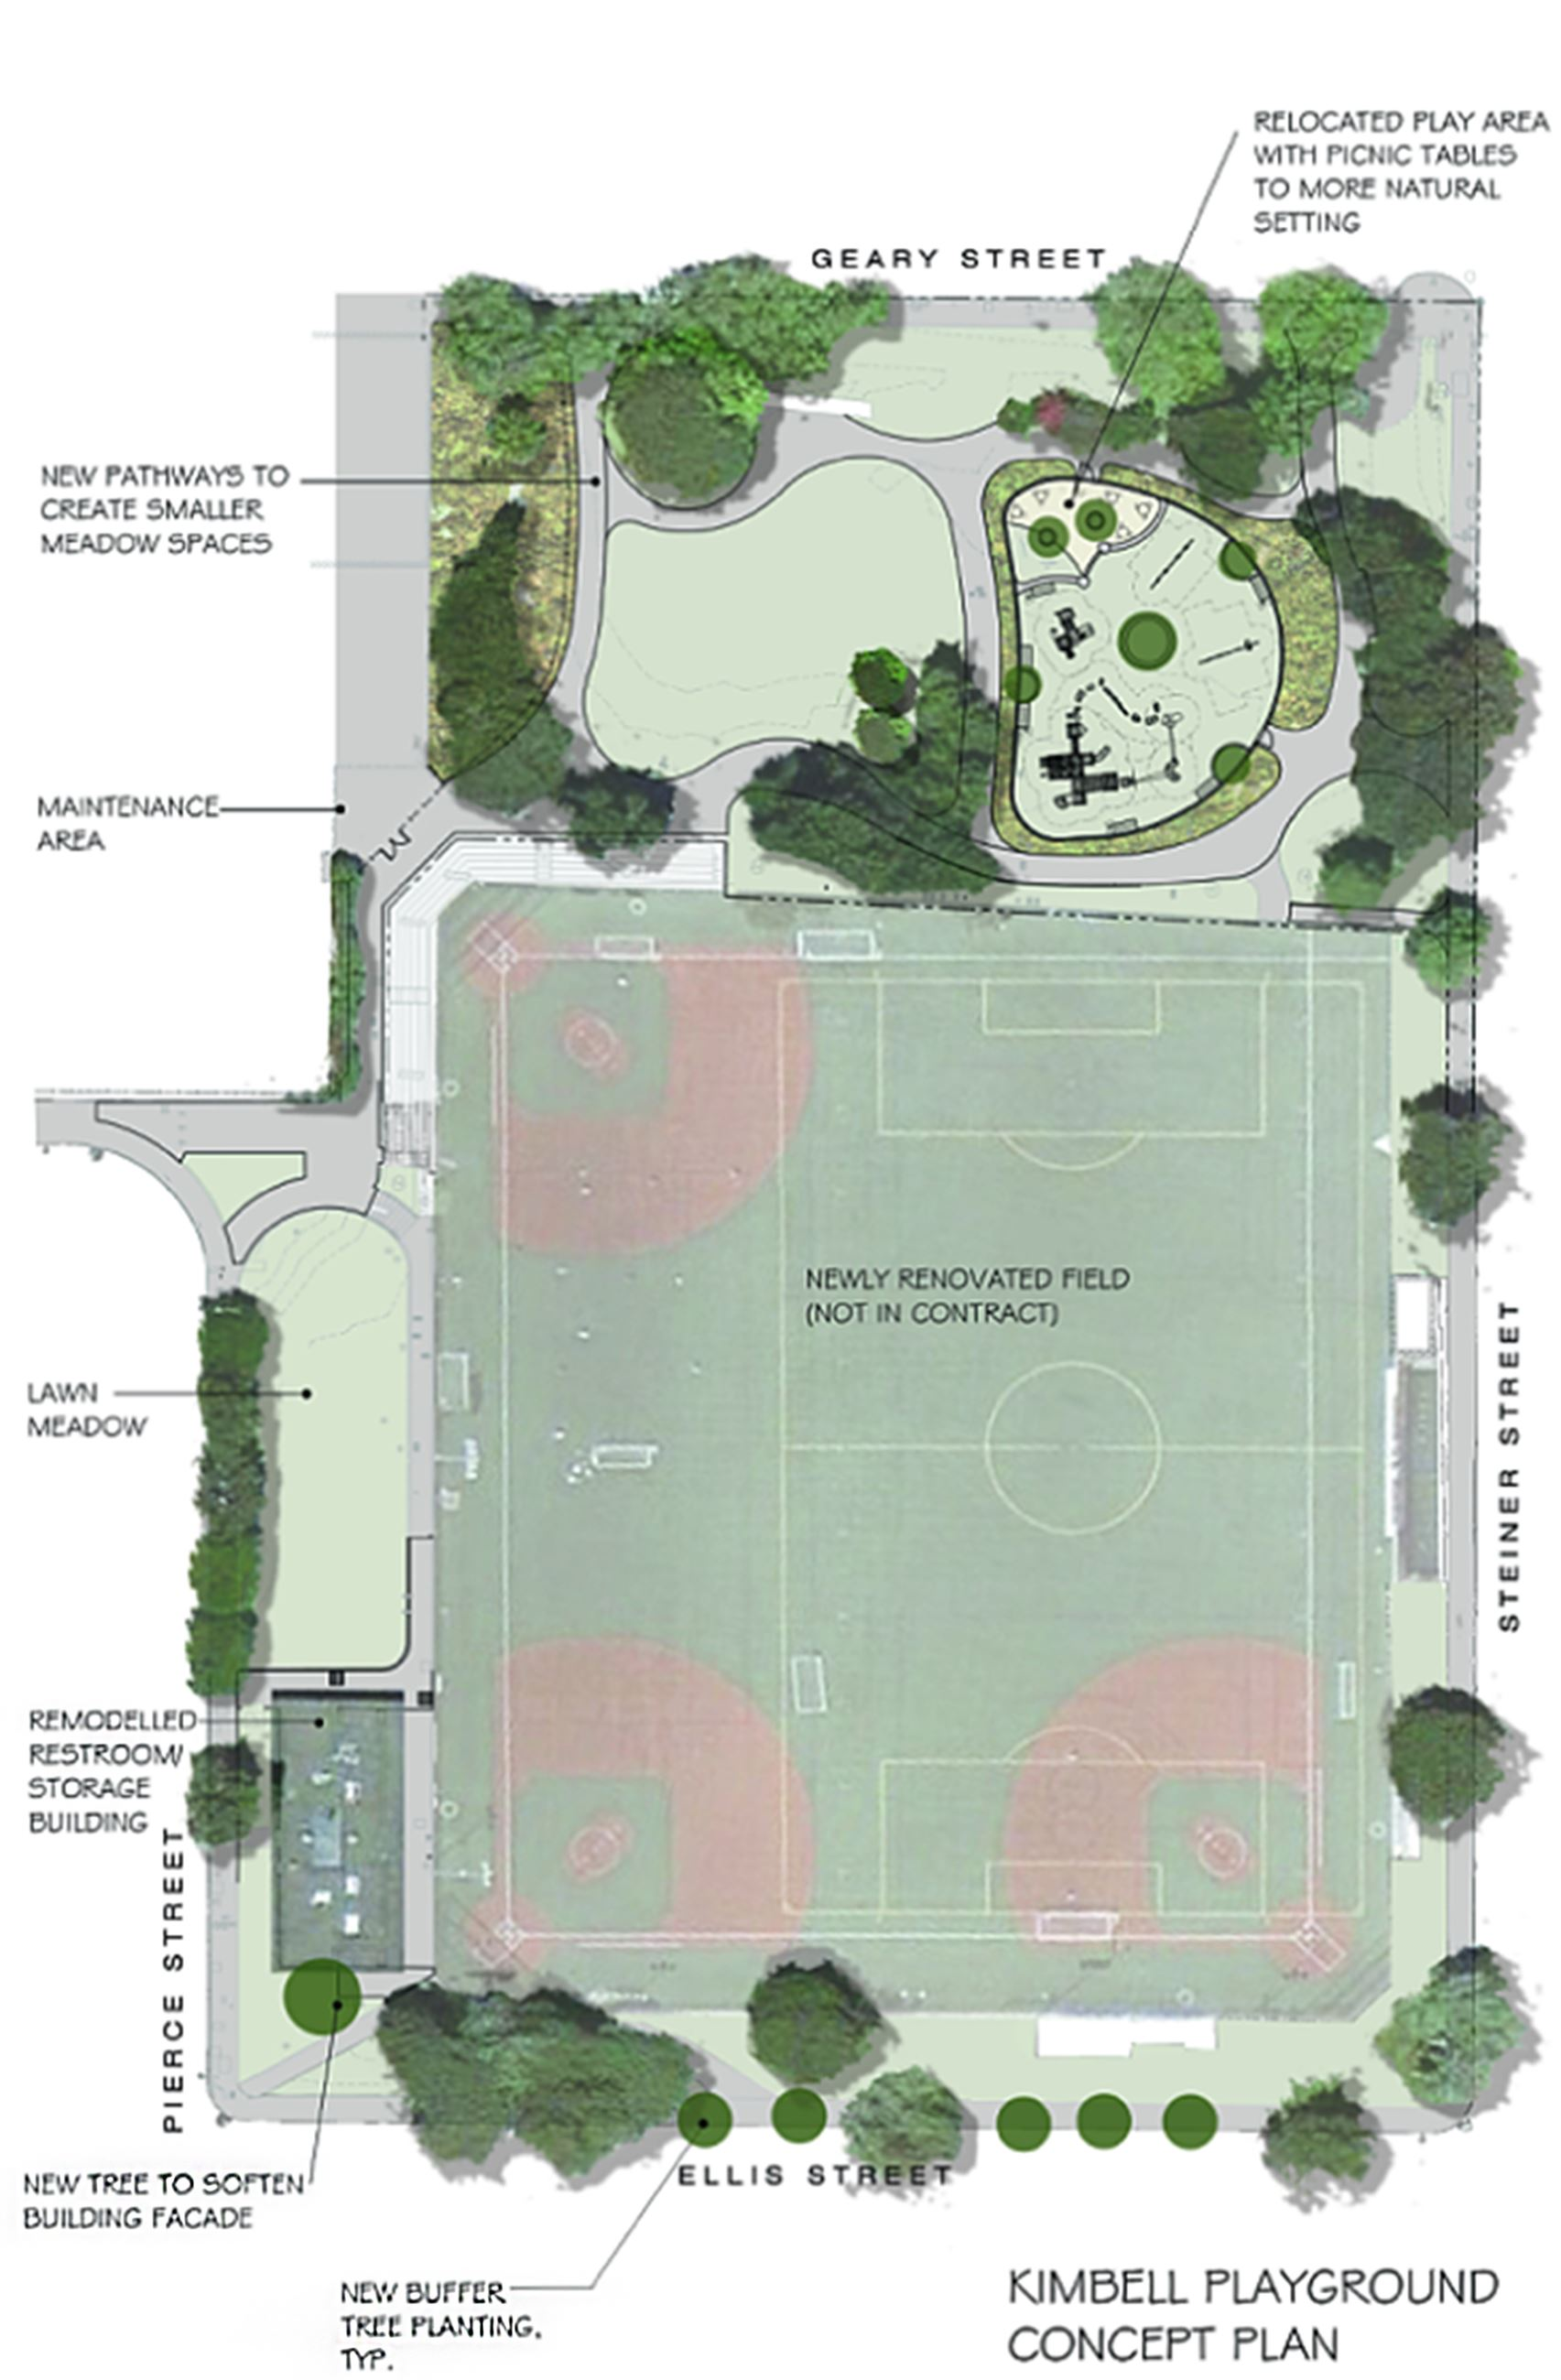 Kimbell Playground Concept Plan (JPG) Opens in new window